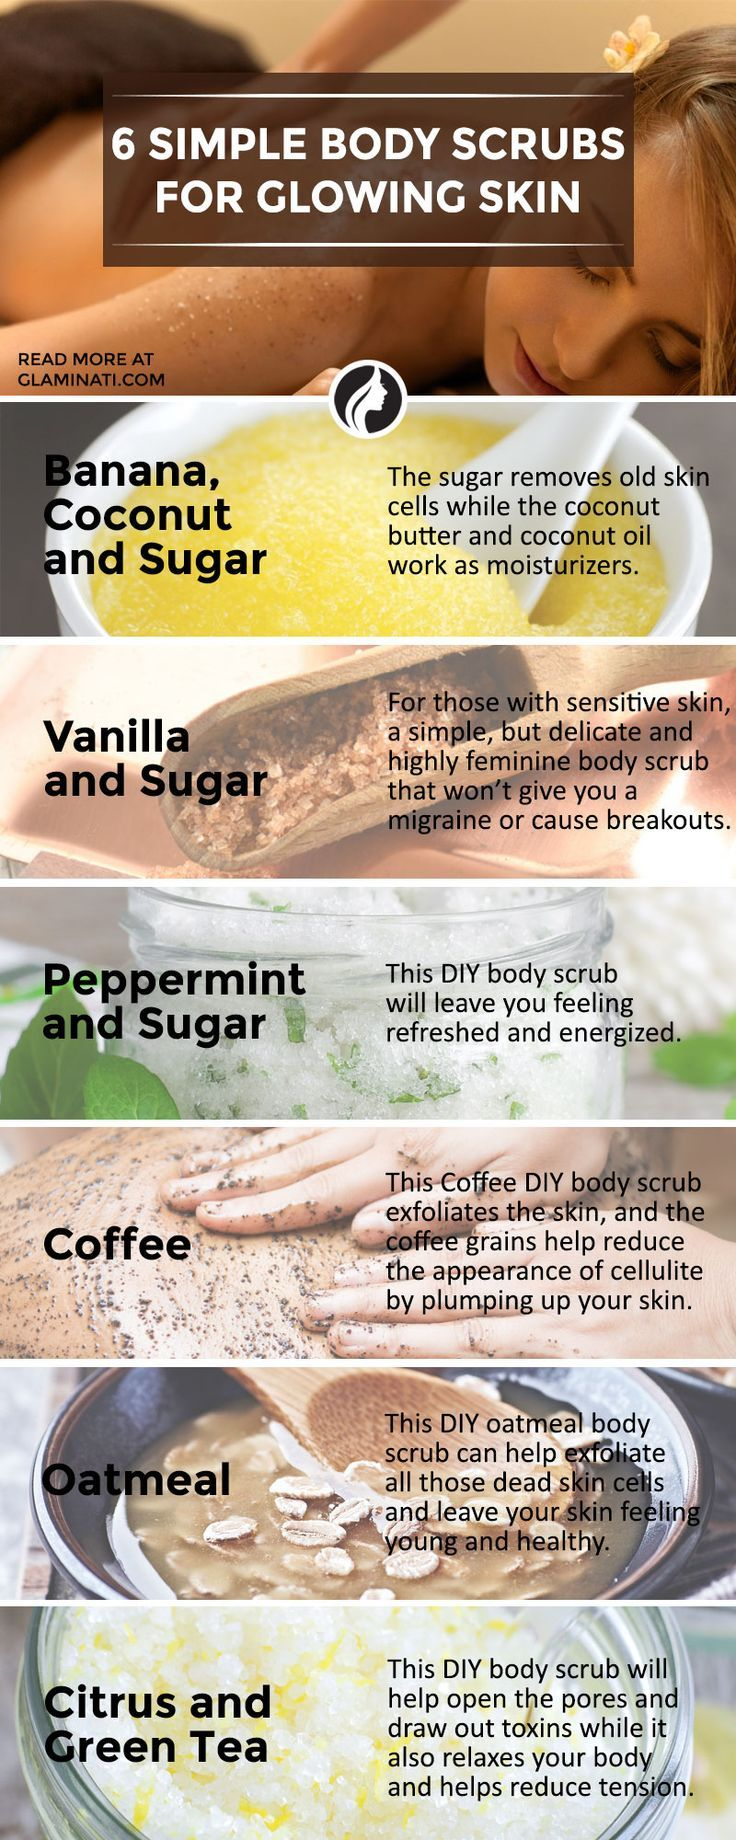 6 diy body scrubs that will make your skin glow - infographic